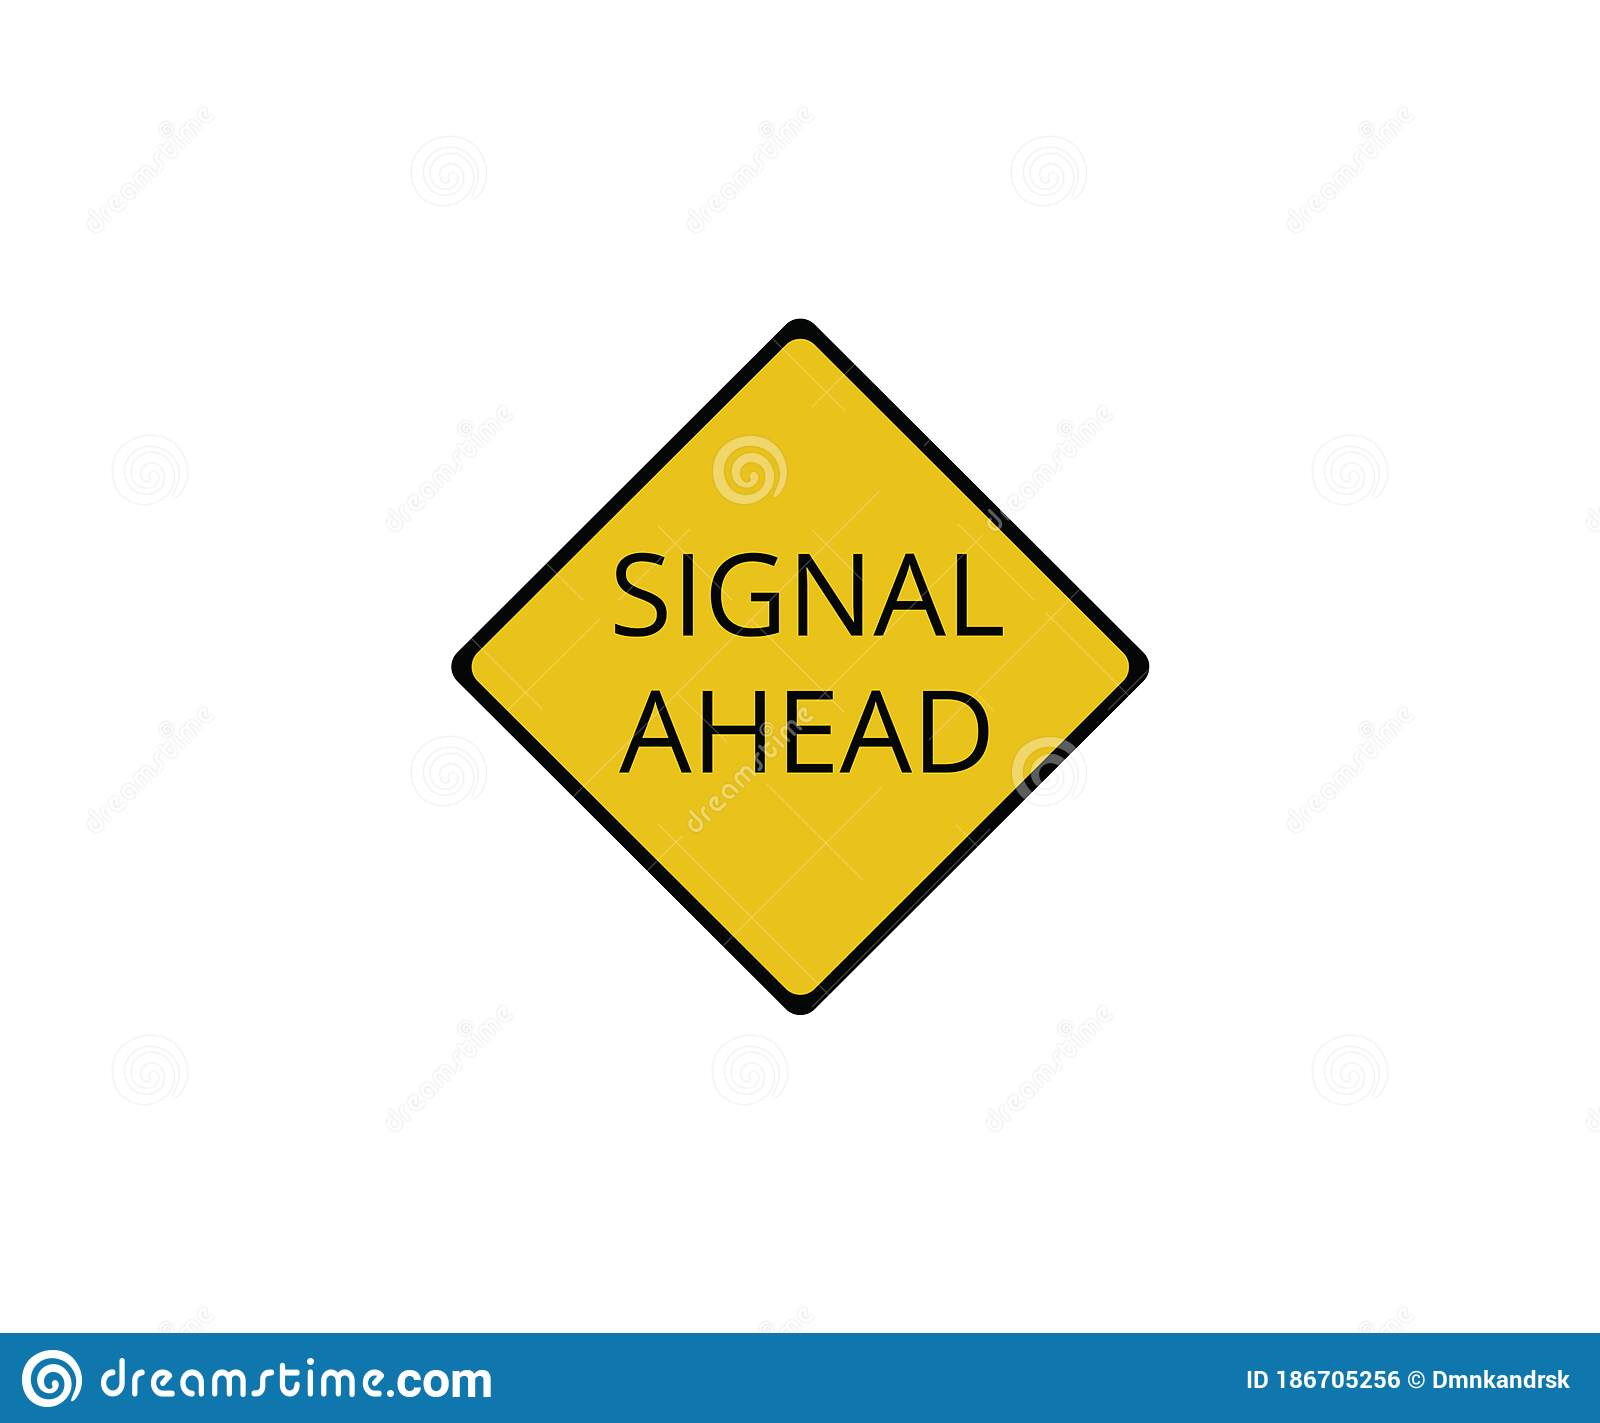 Ahead Signal Stock Illustrations 1 668 Ahead Signal Stock Illustrations Vectors Clipart Dreamstime